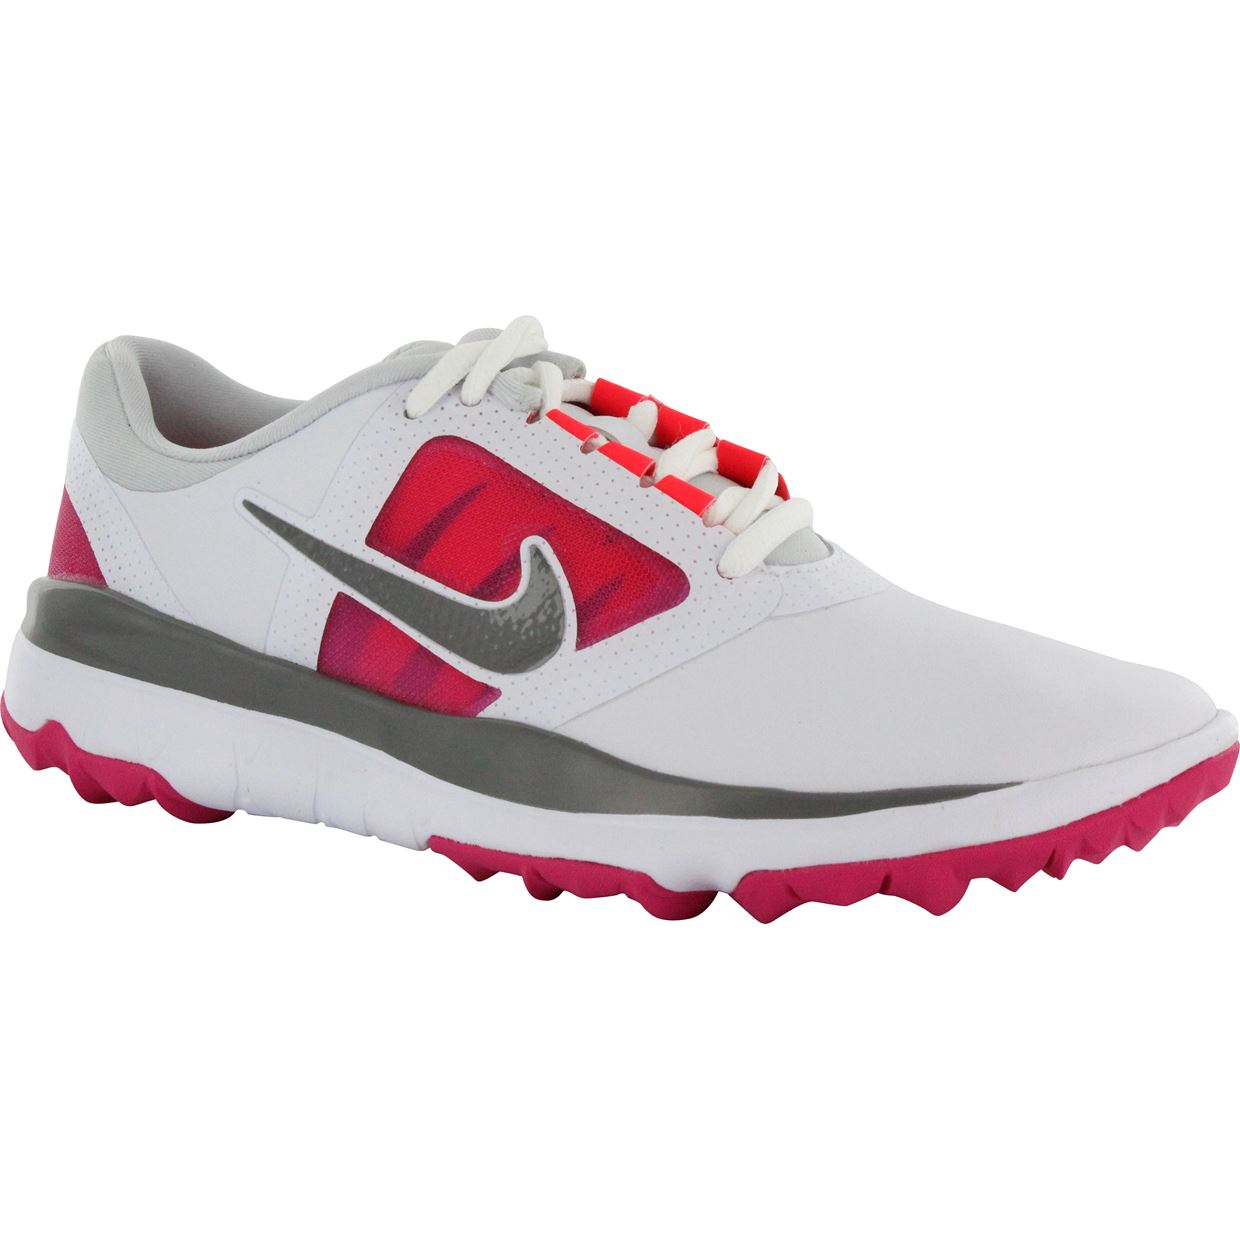 Nike Fi Impact Spikeless Golf Shoes Review